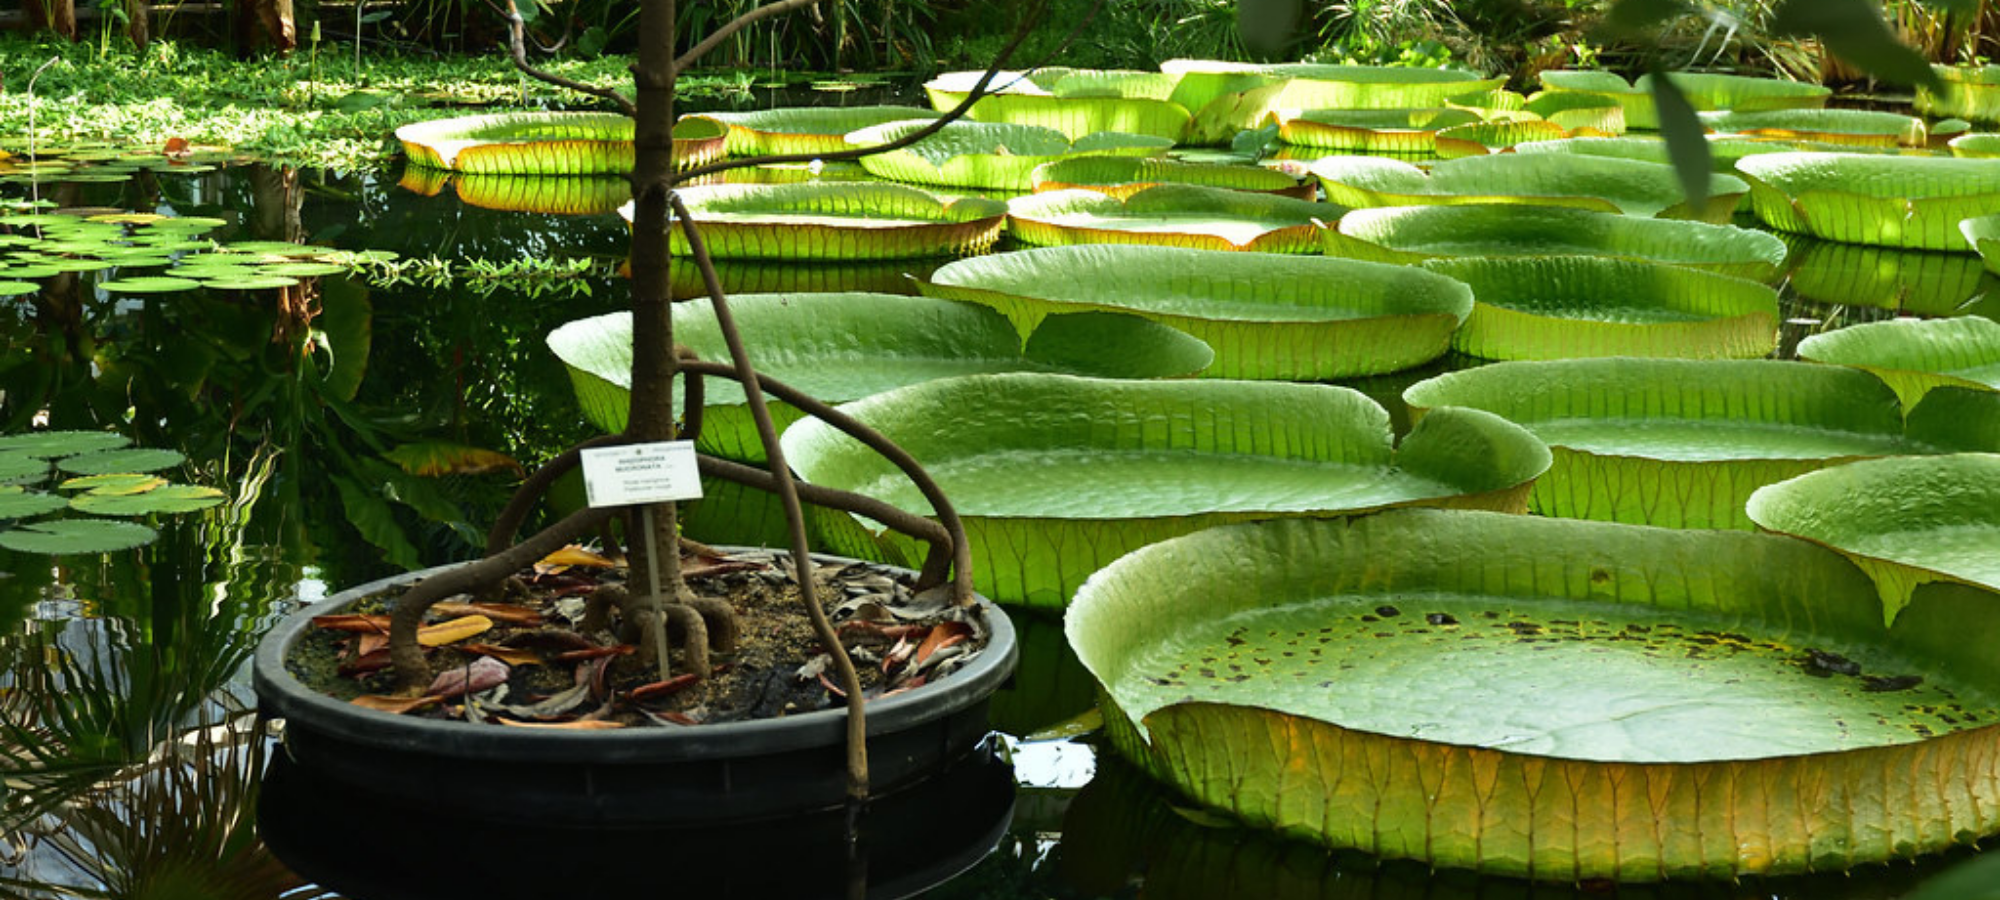 A large pond filled with lily pads and botanical plants at Meise Botanical Garden, Belgiumt